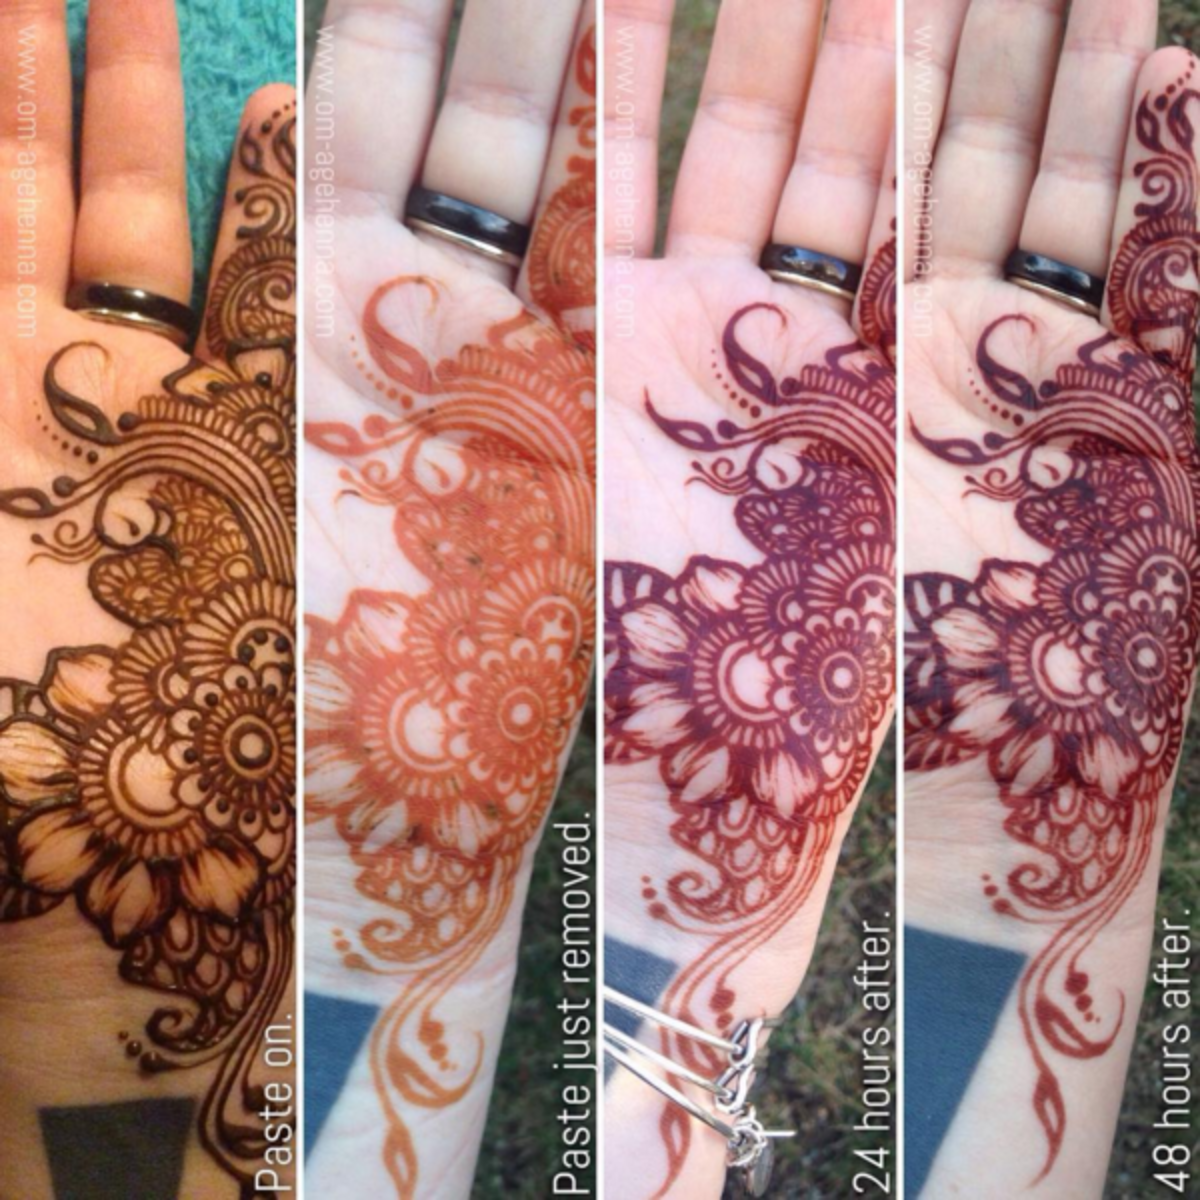 The henna stain darkens over time and usually lasts about a week, but this can be lengthened by using the liquids mentioned above.